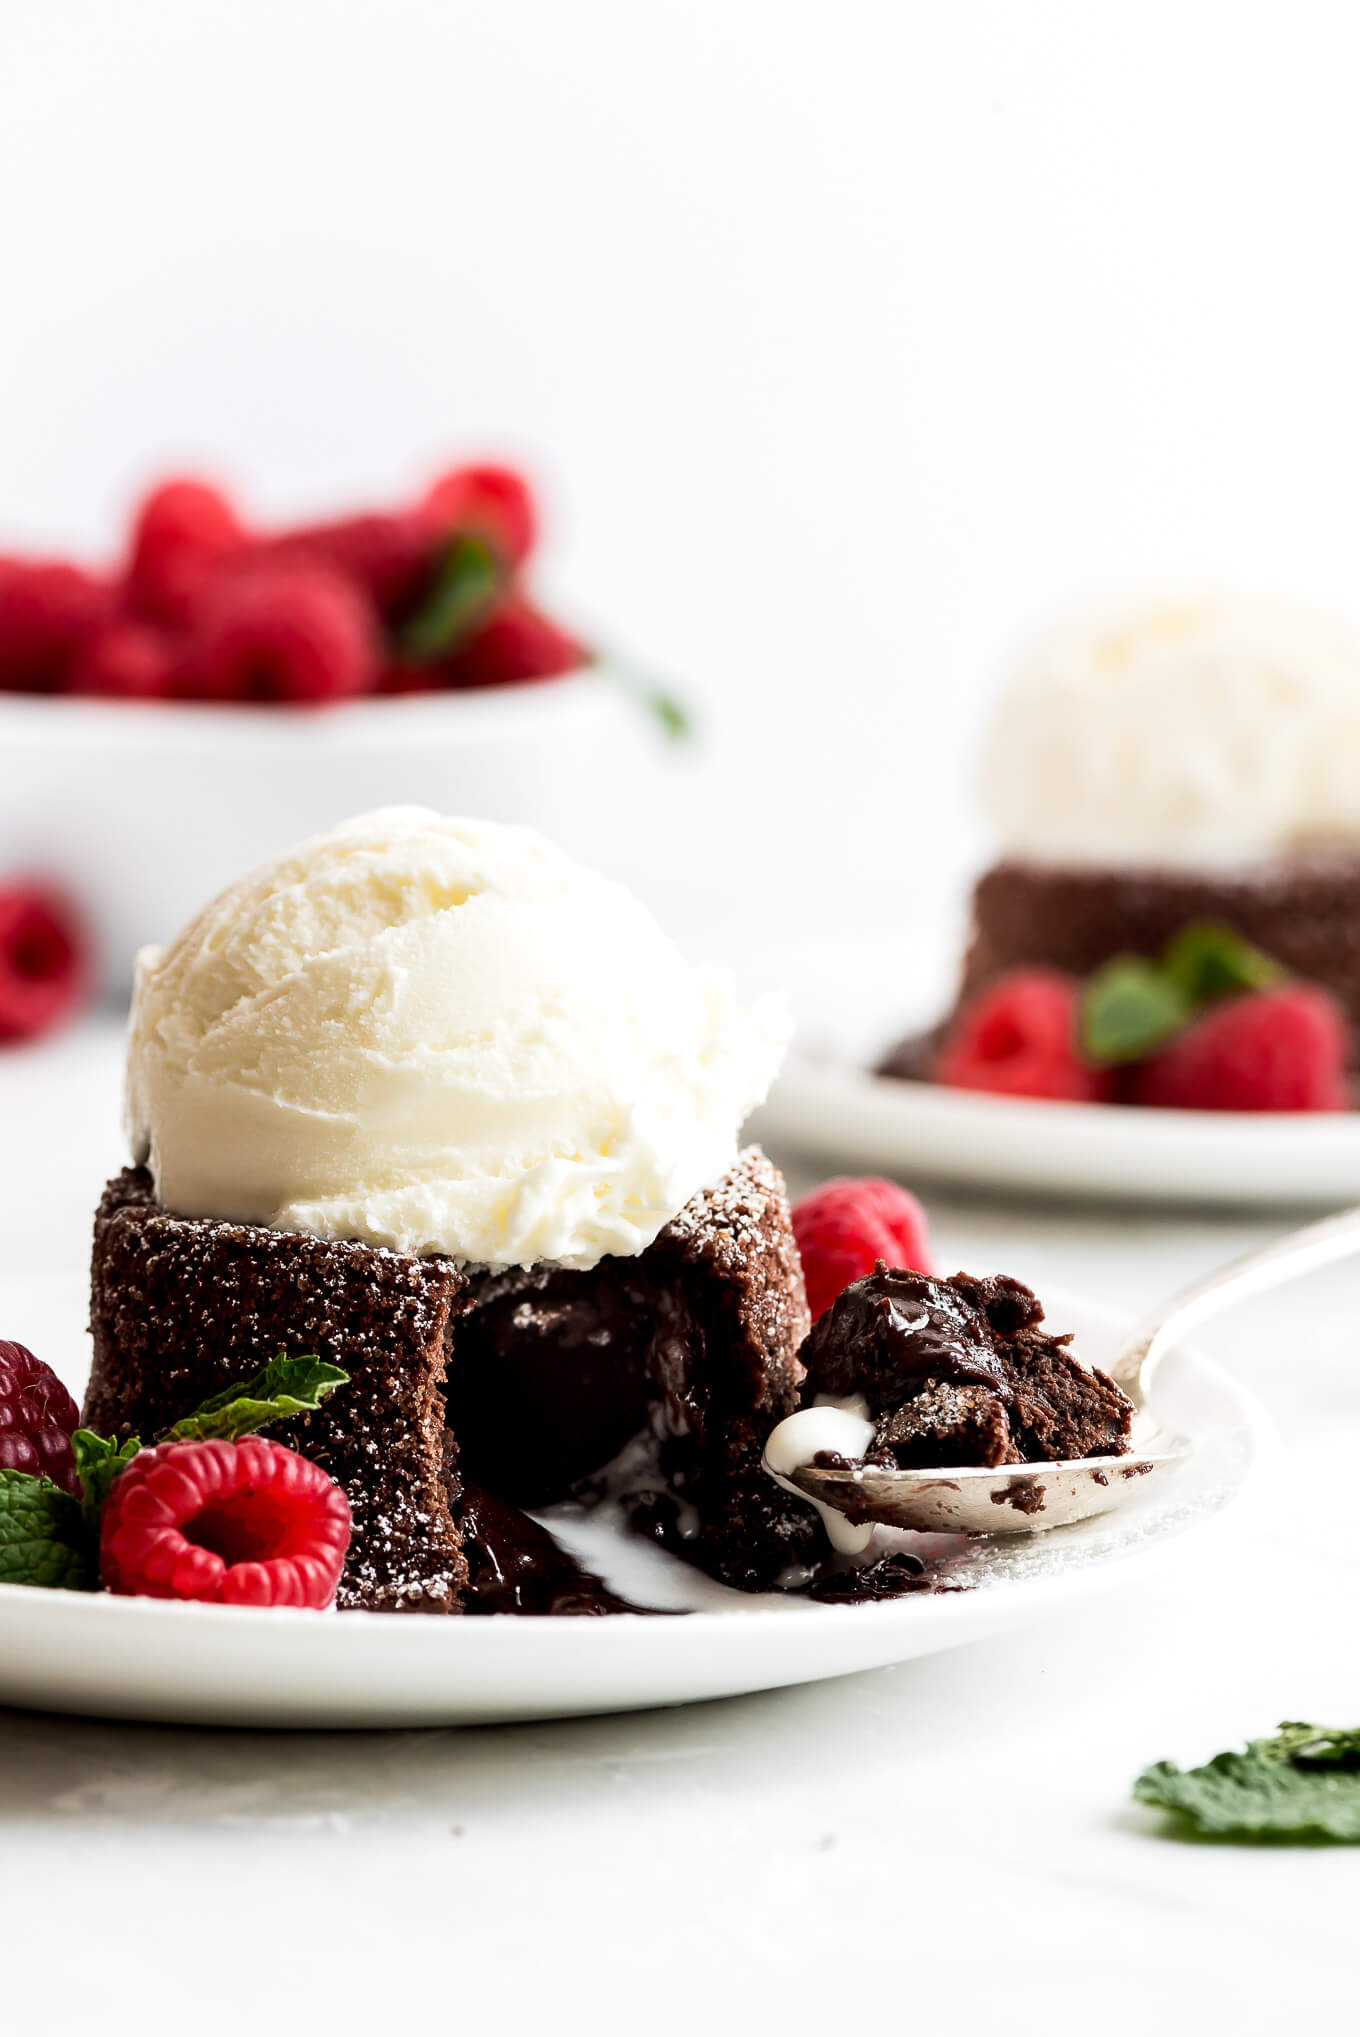 Chocolate Lava Cake on a plate with raspberries and a scoop of vanilla ice cream on top.